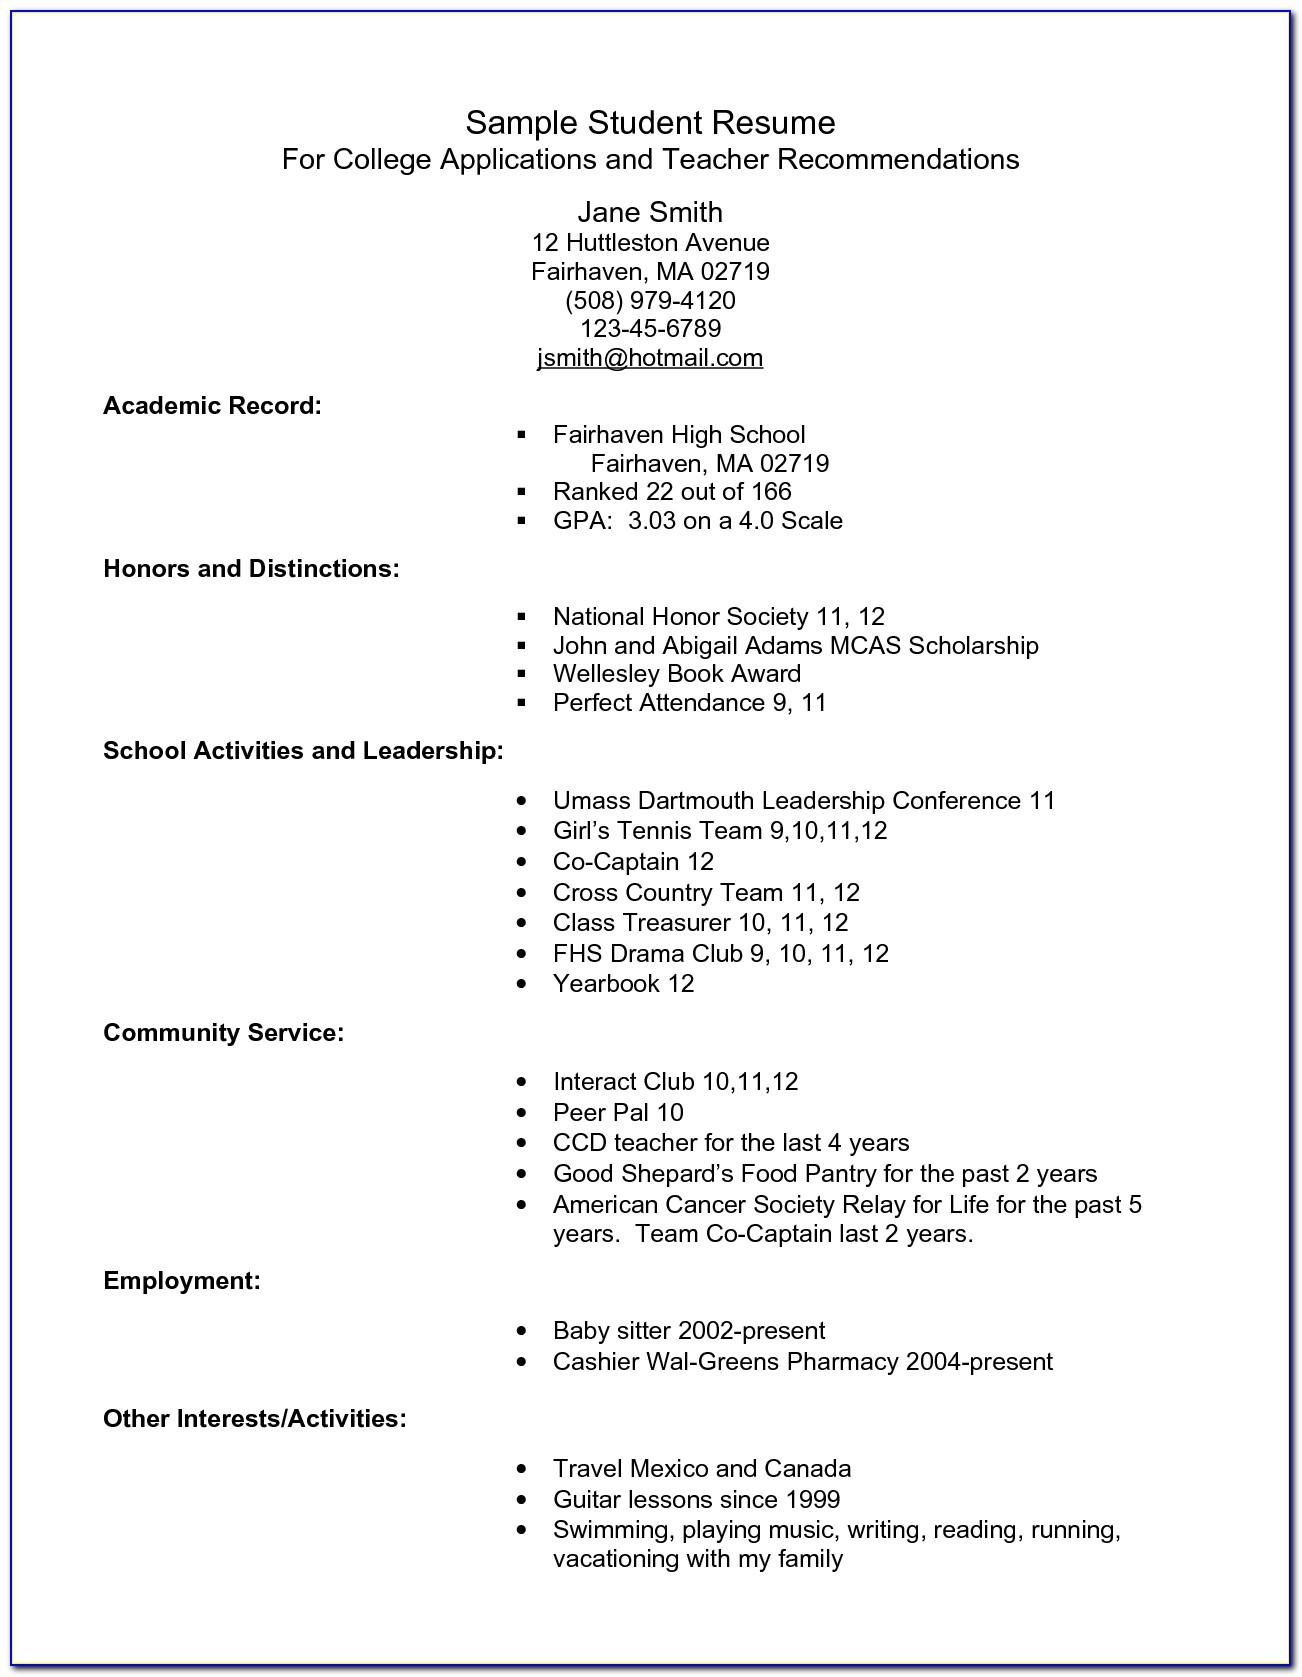 Resume Examples For Highschool Students Applying To College